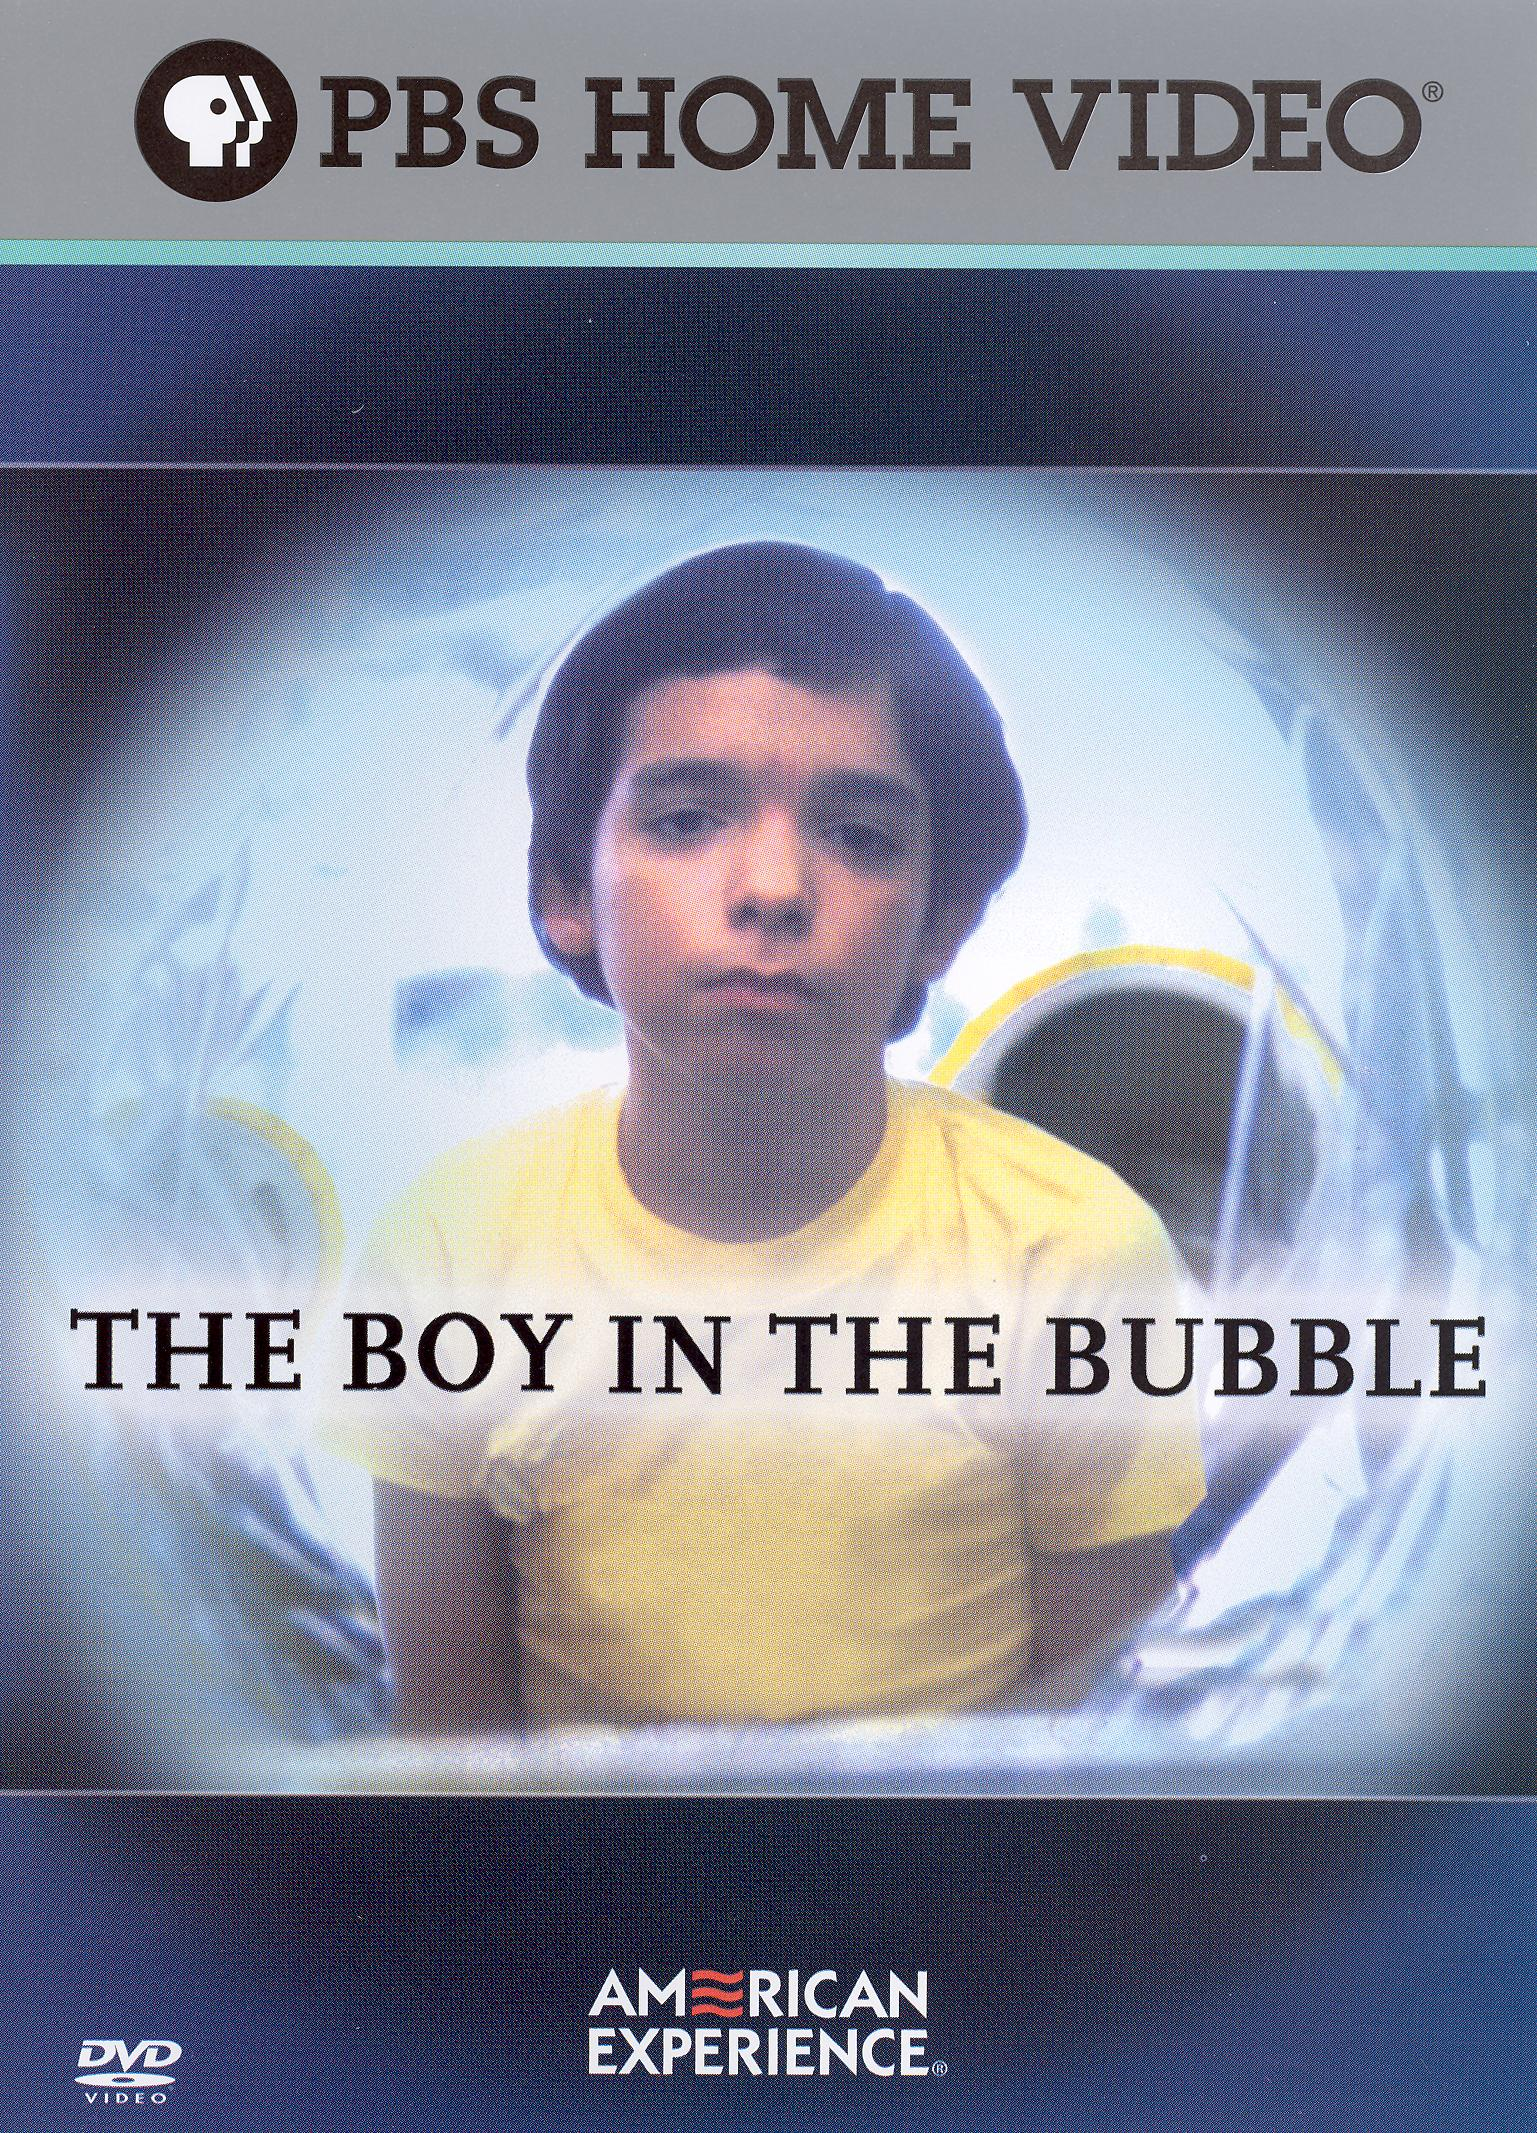 American Experience: The Boy in the Bubble